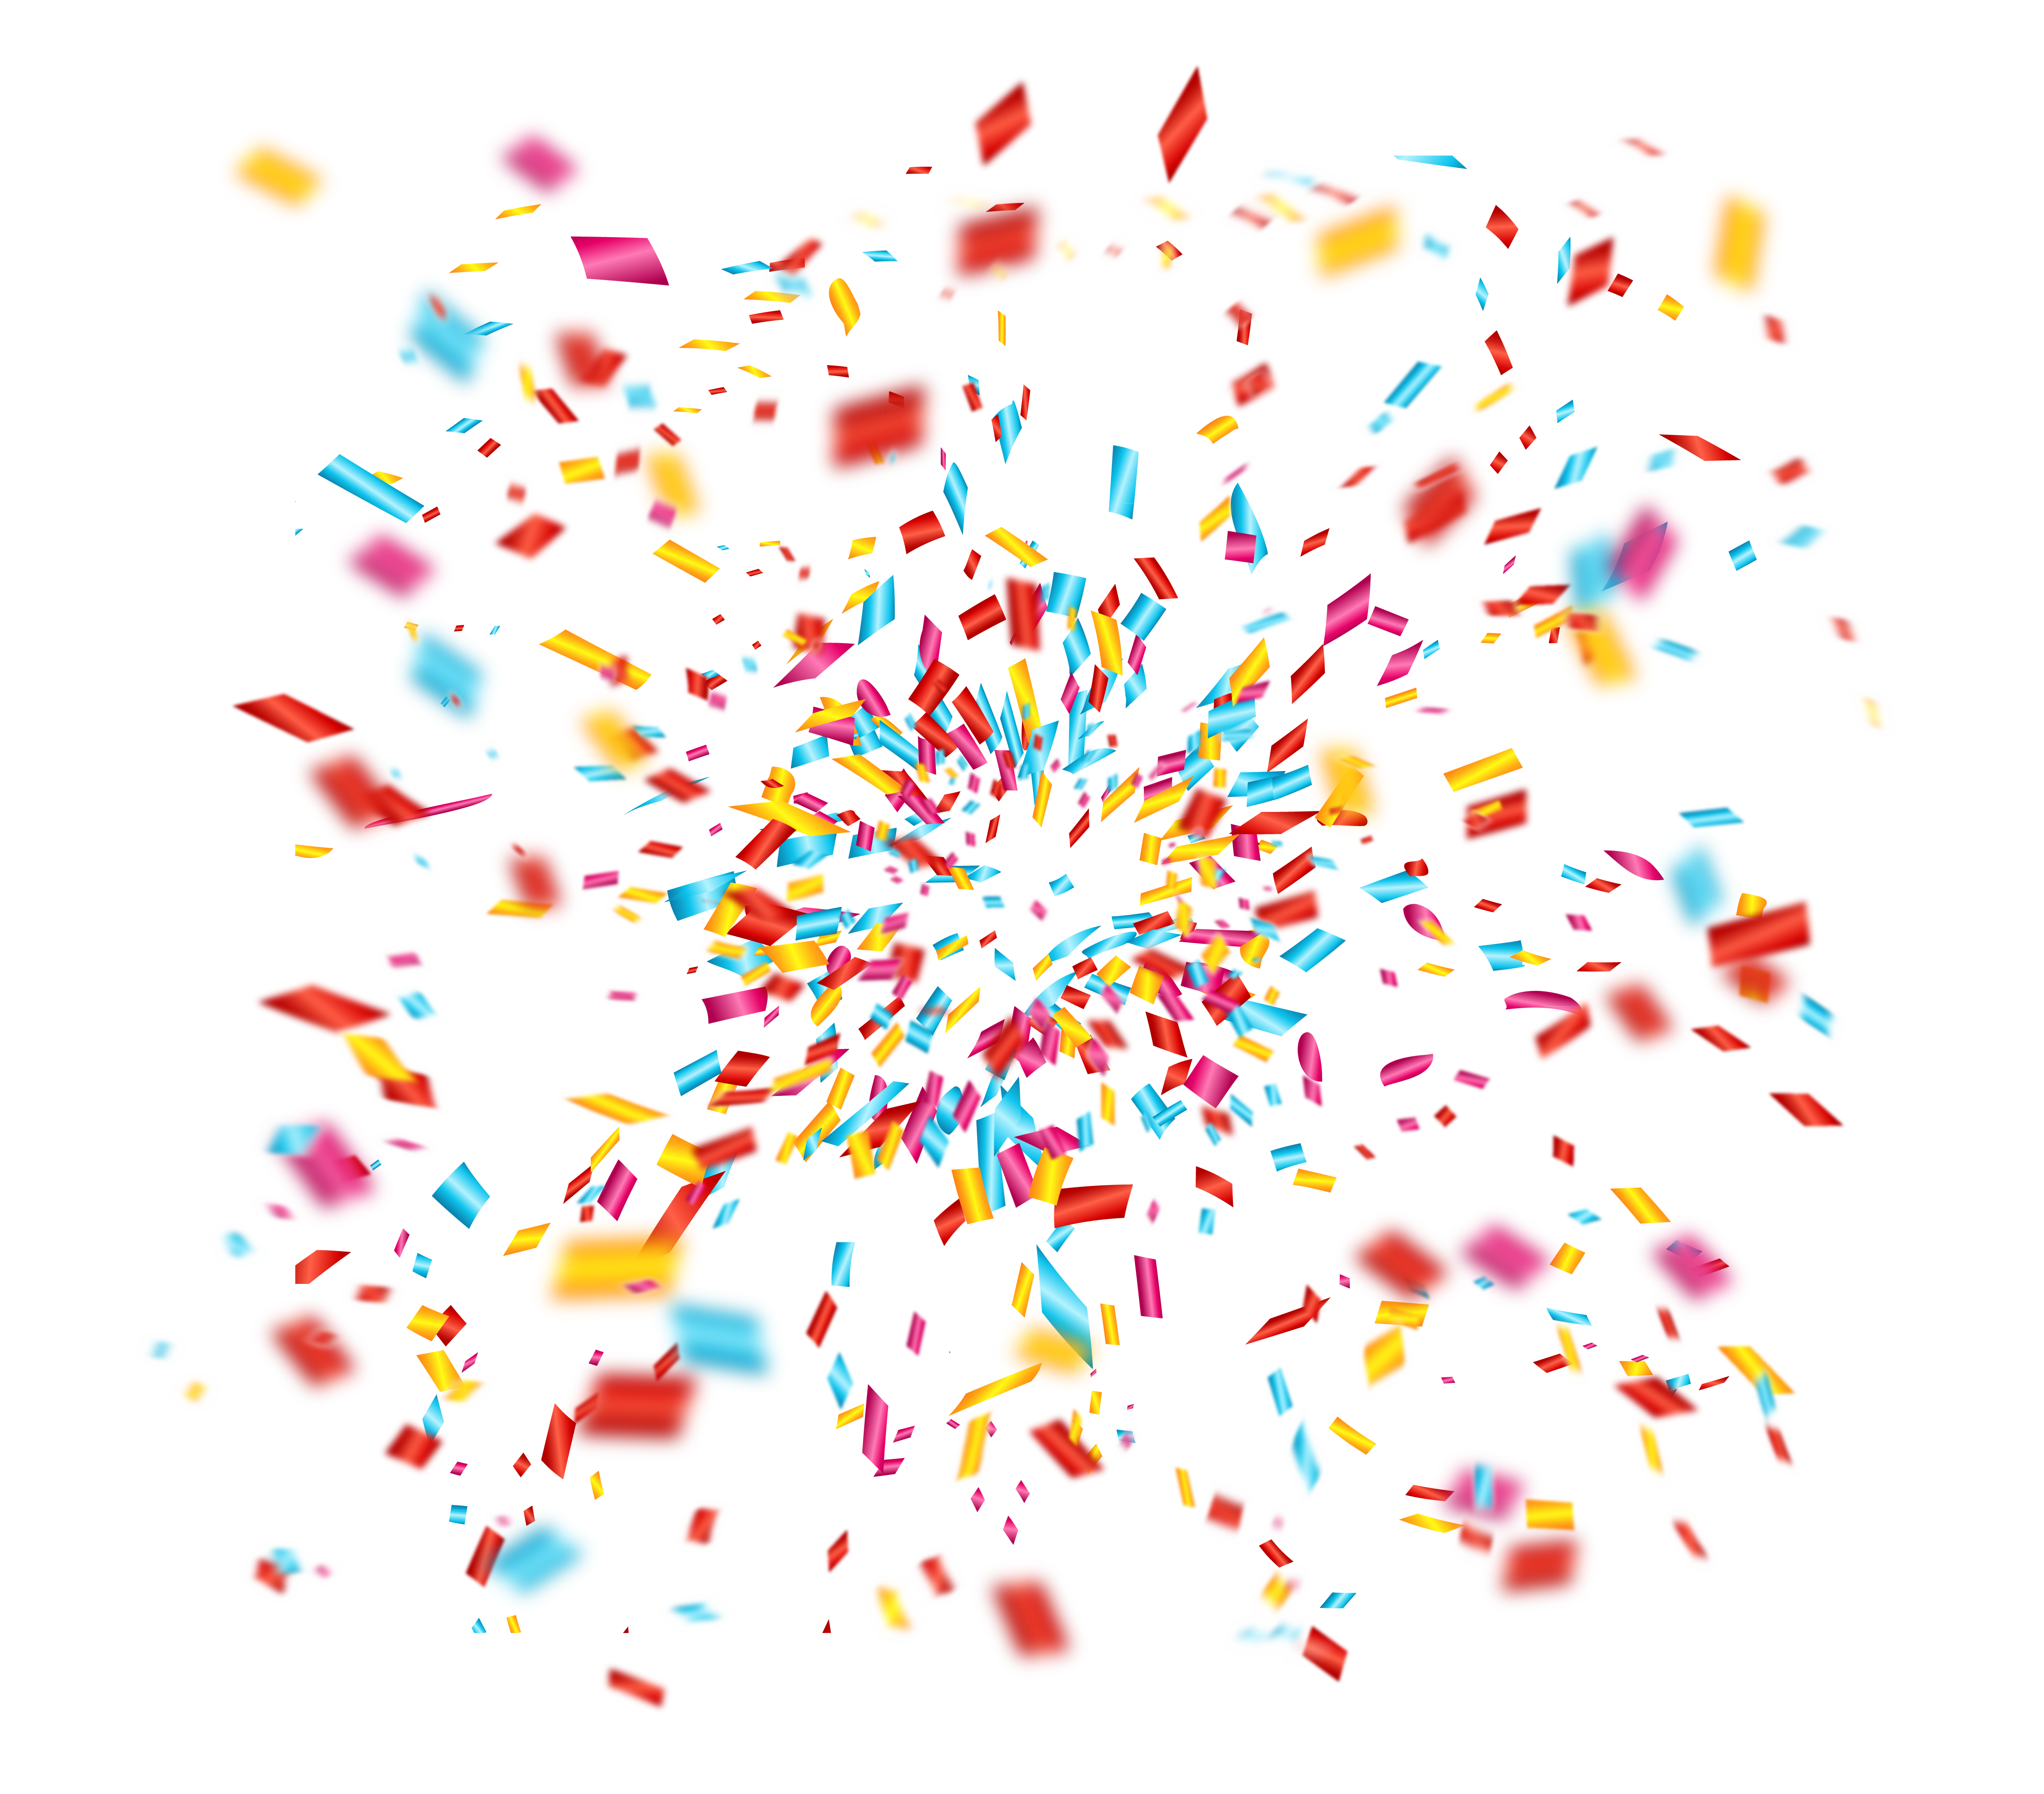 Party confetti png. Clip art celebrate fireworks